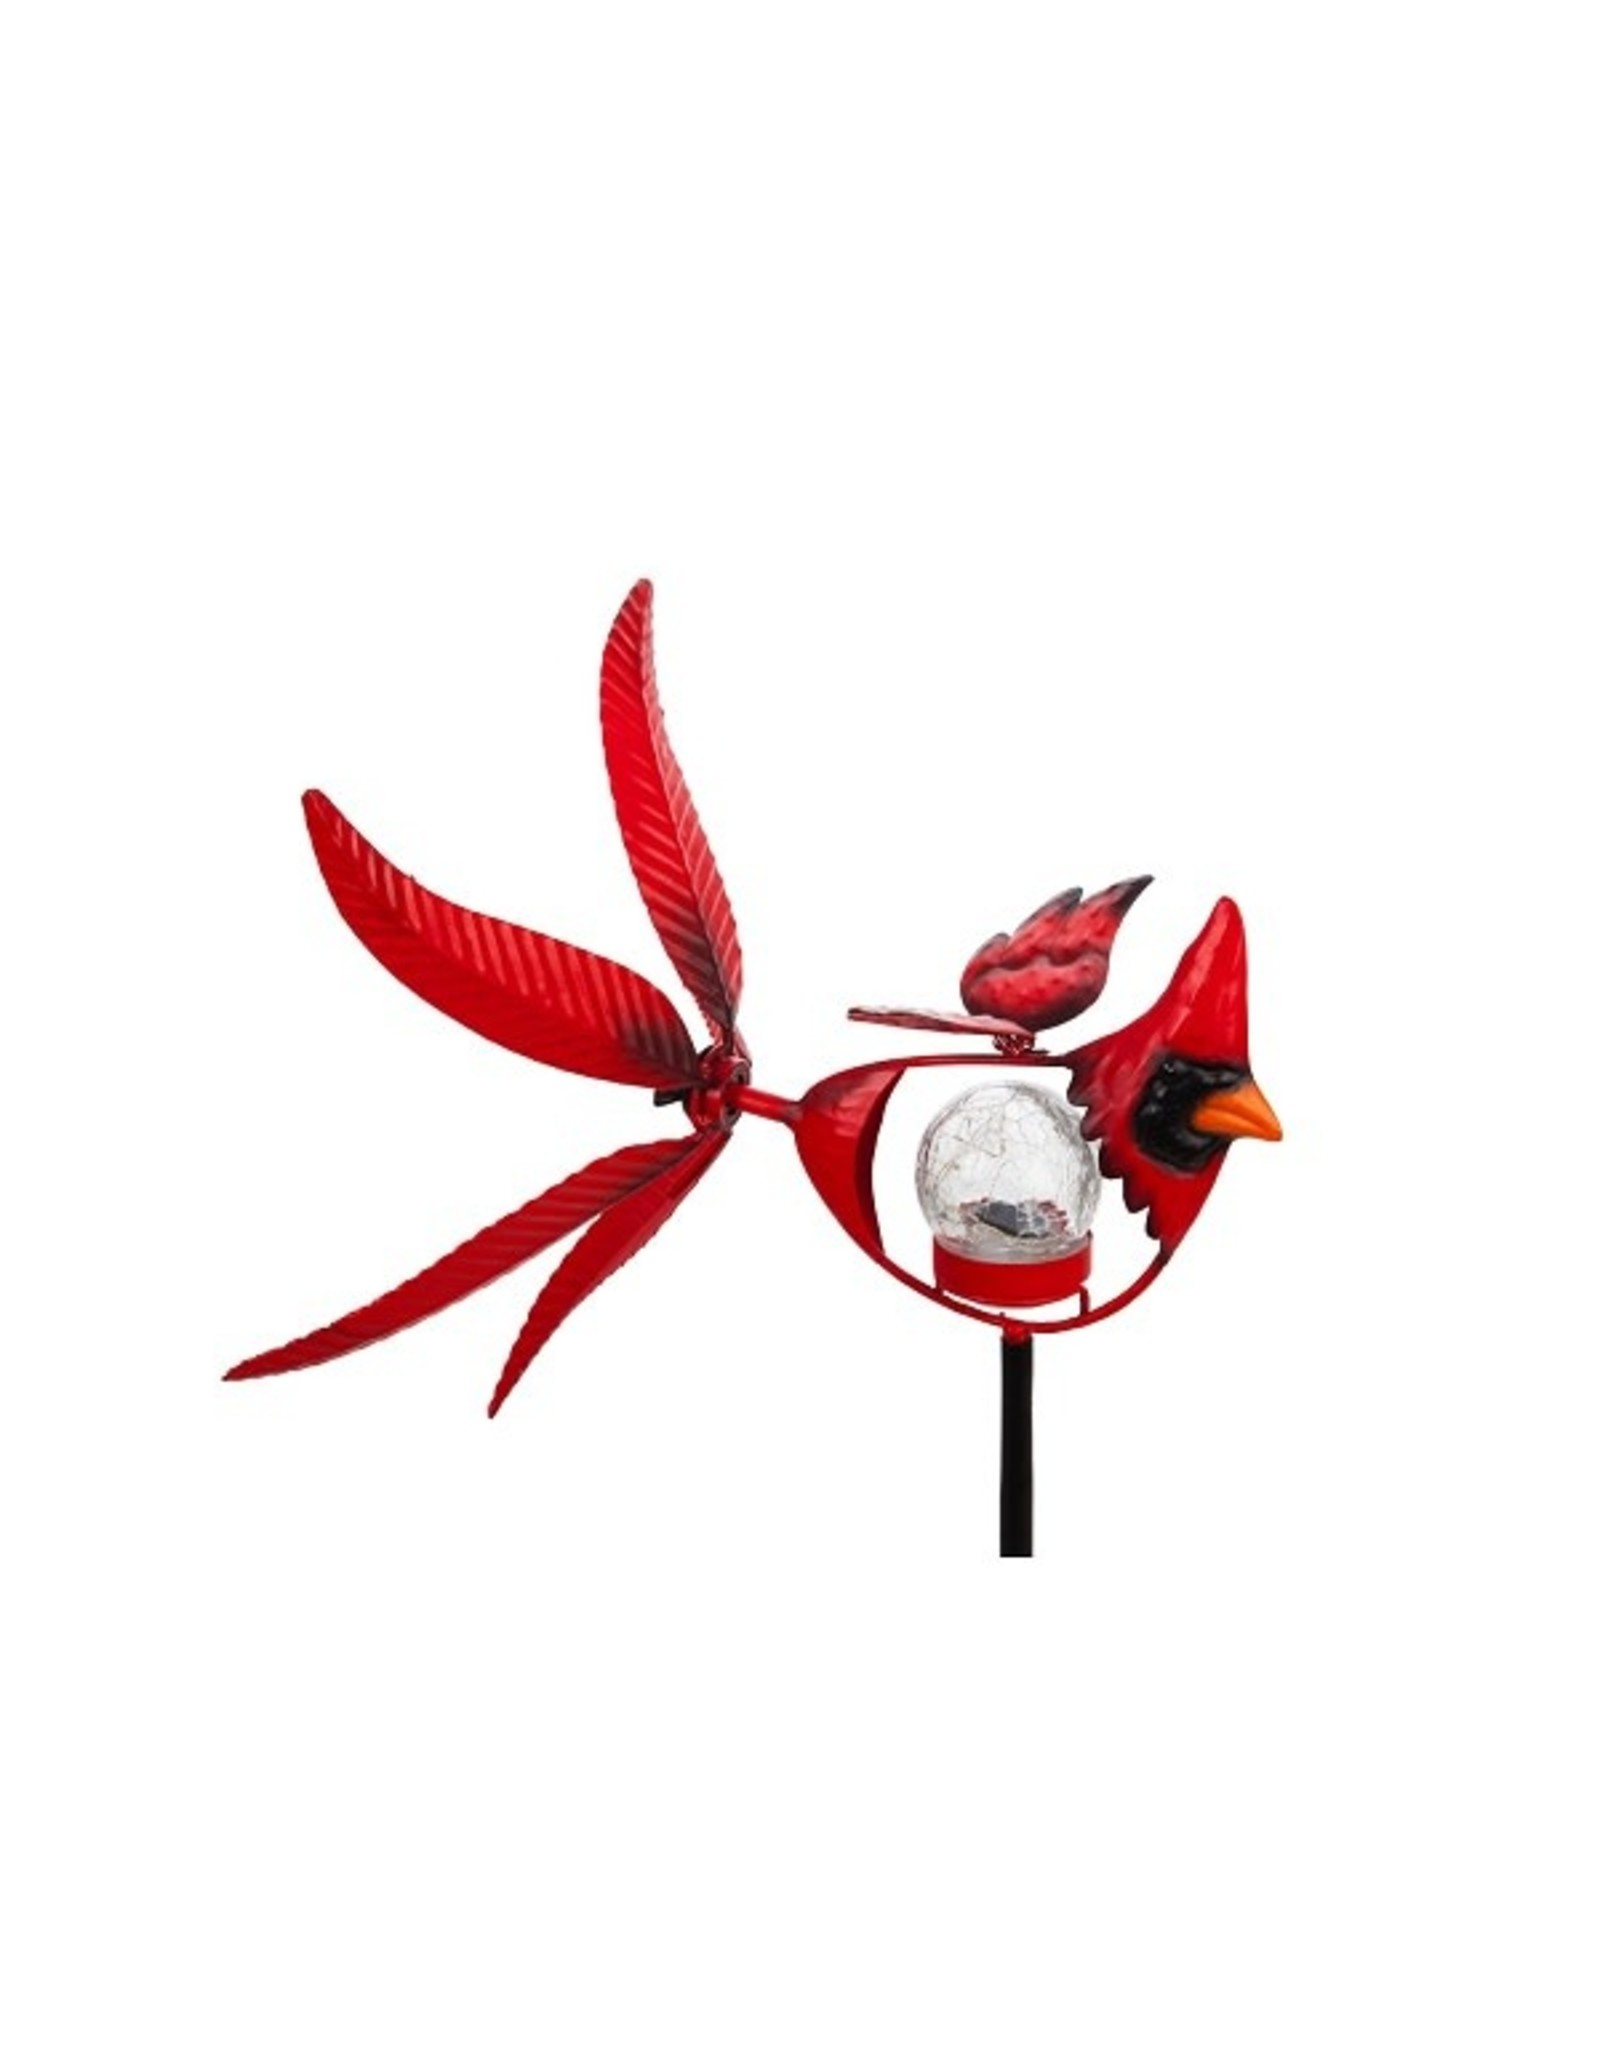 Evergreen CARDINAL SOLAR WIND SPINNER